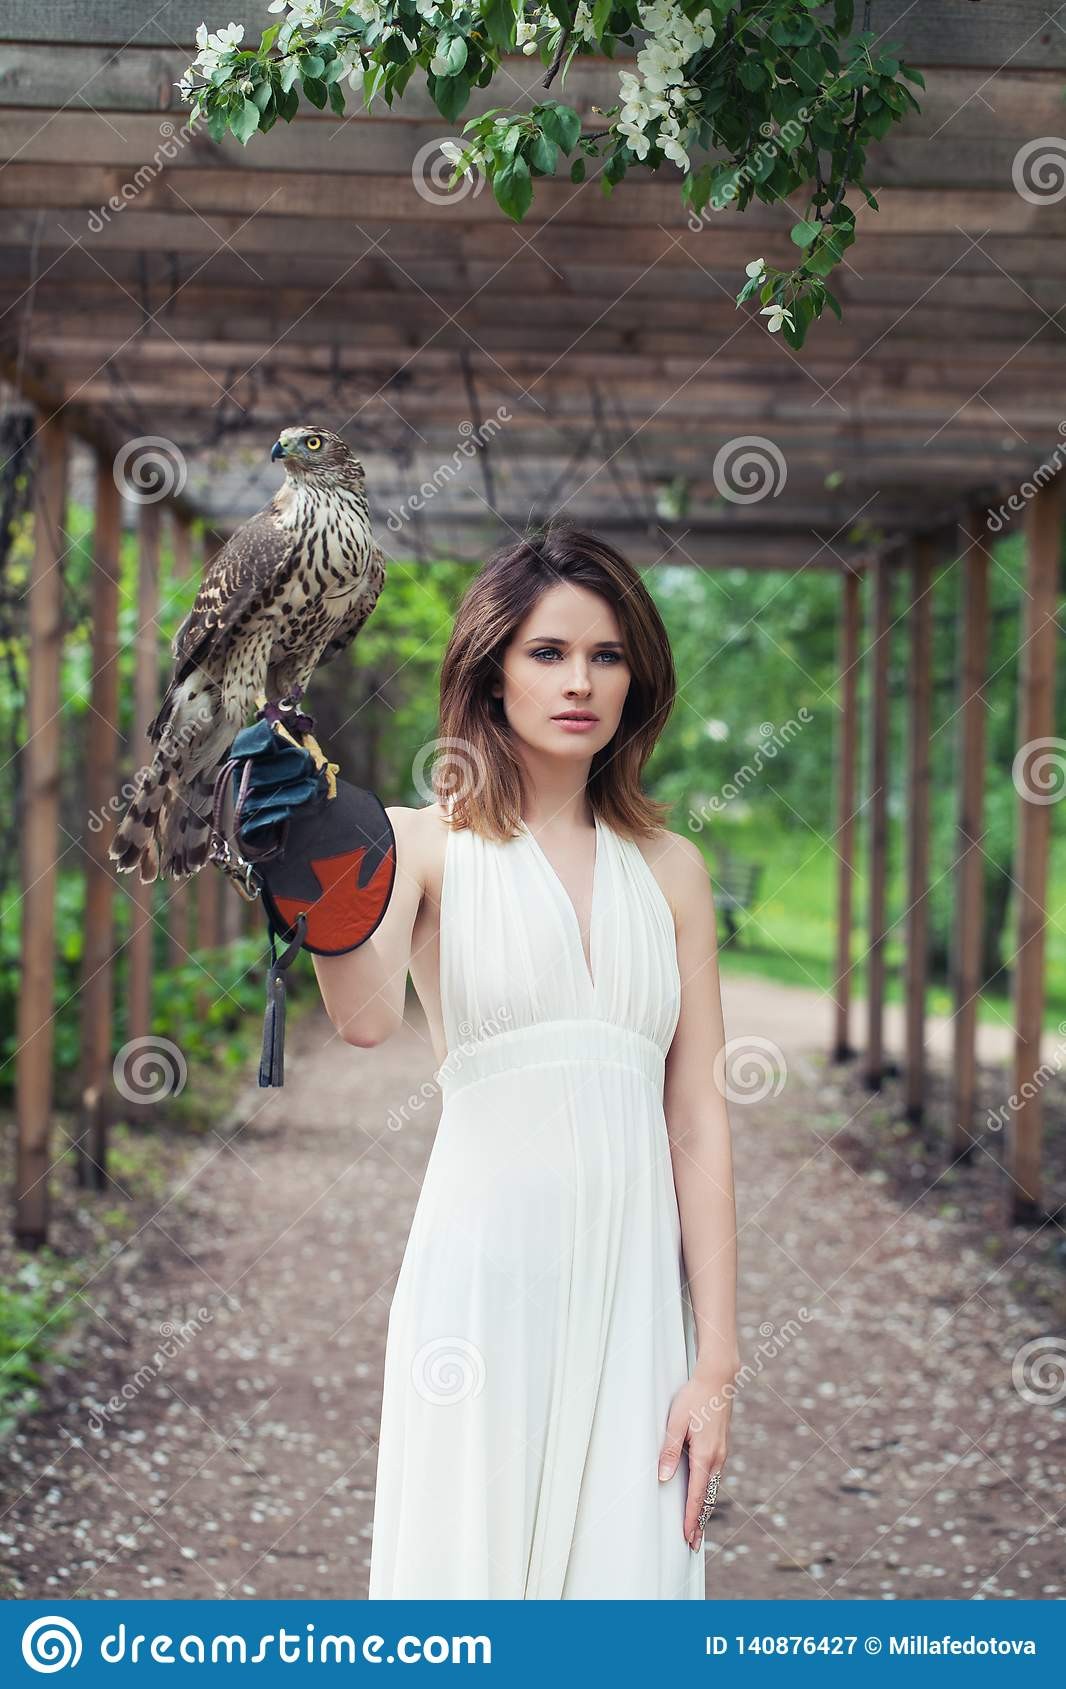 Young woman in white dress holding hawk bird outdoor